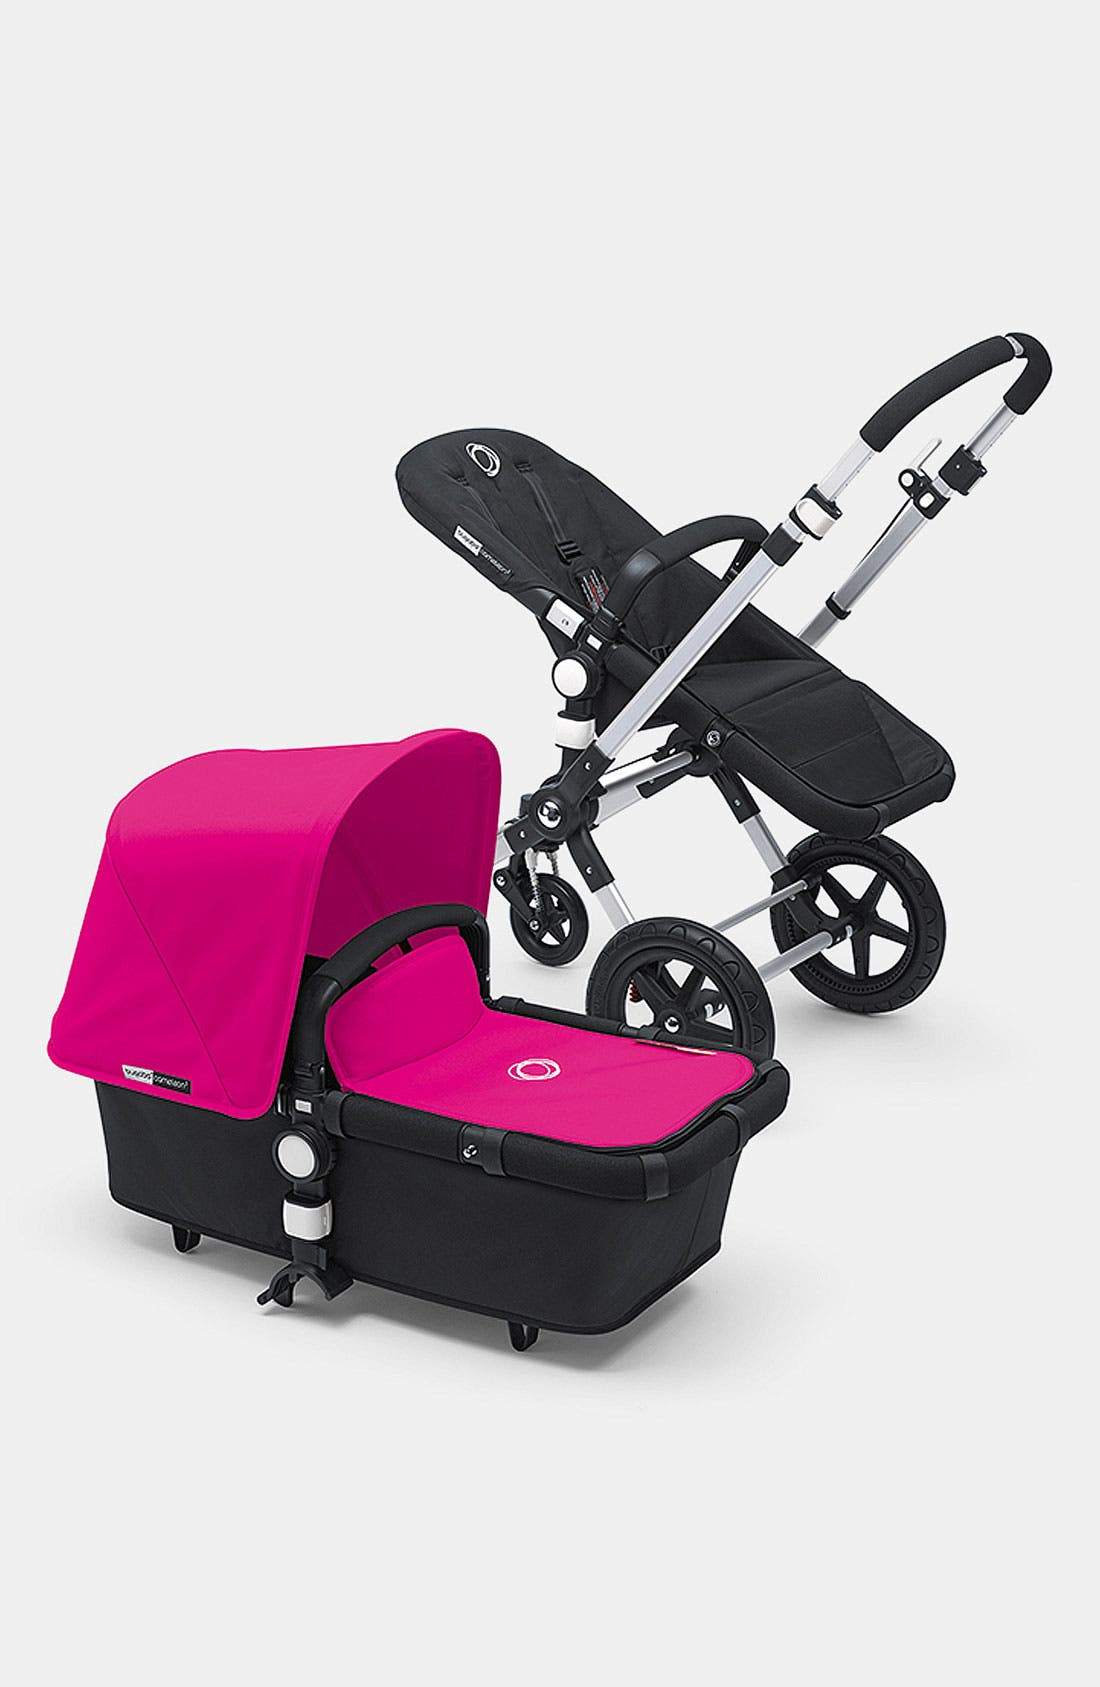 Main Image - Bugaboo Cameleon & Cameleon³ Stroller Tailored Fabric Set